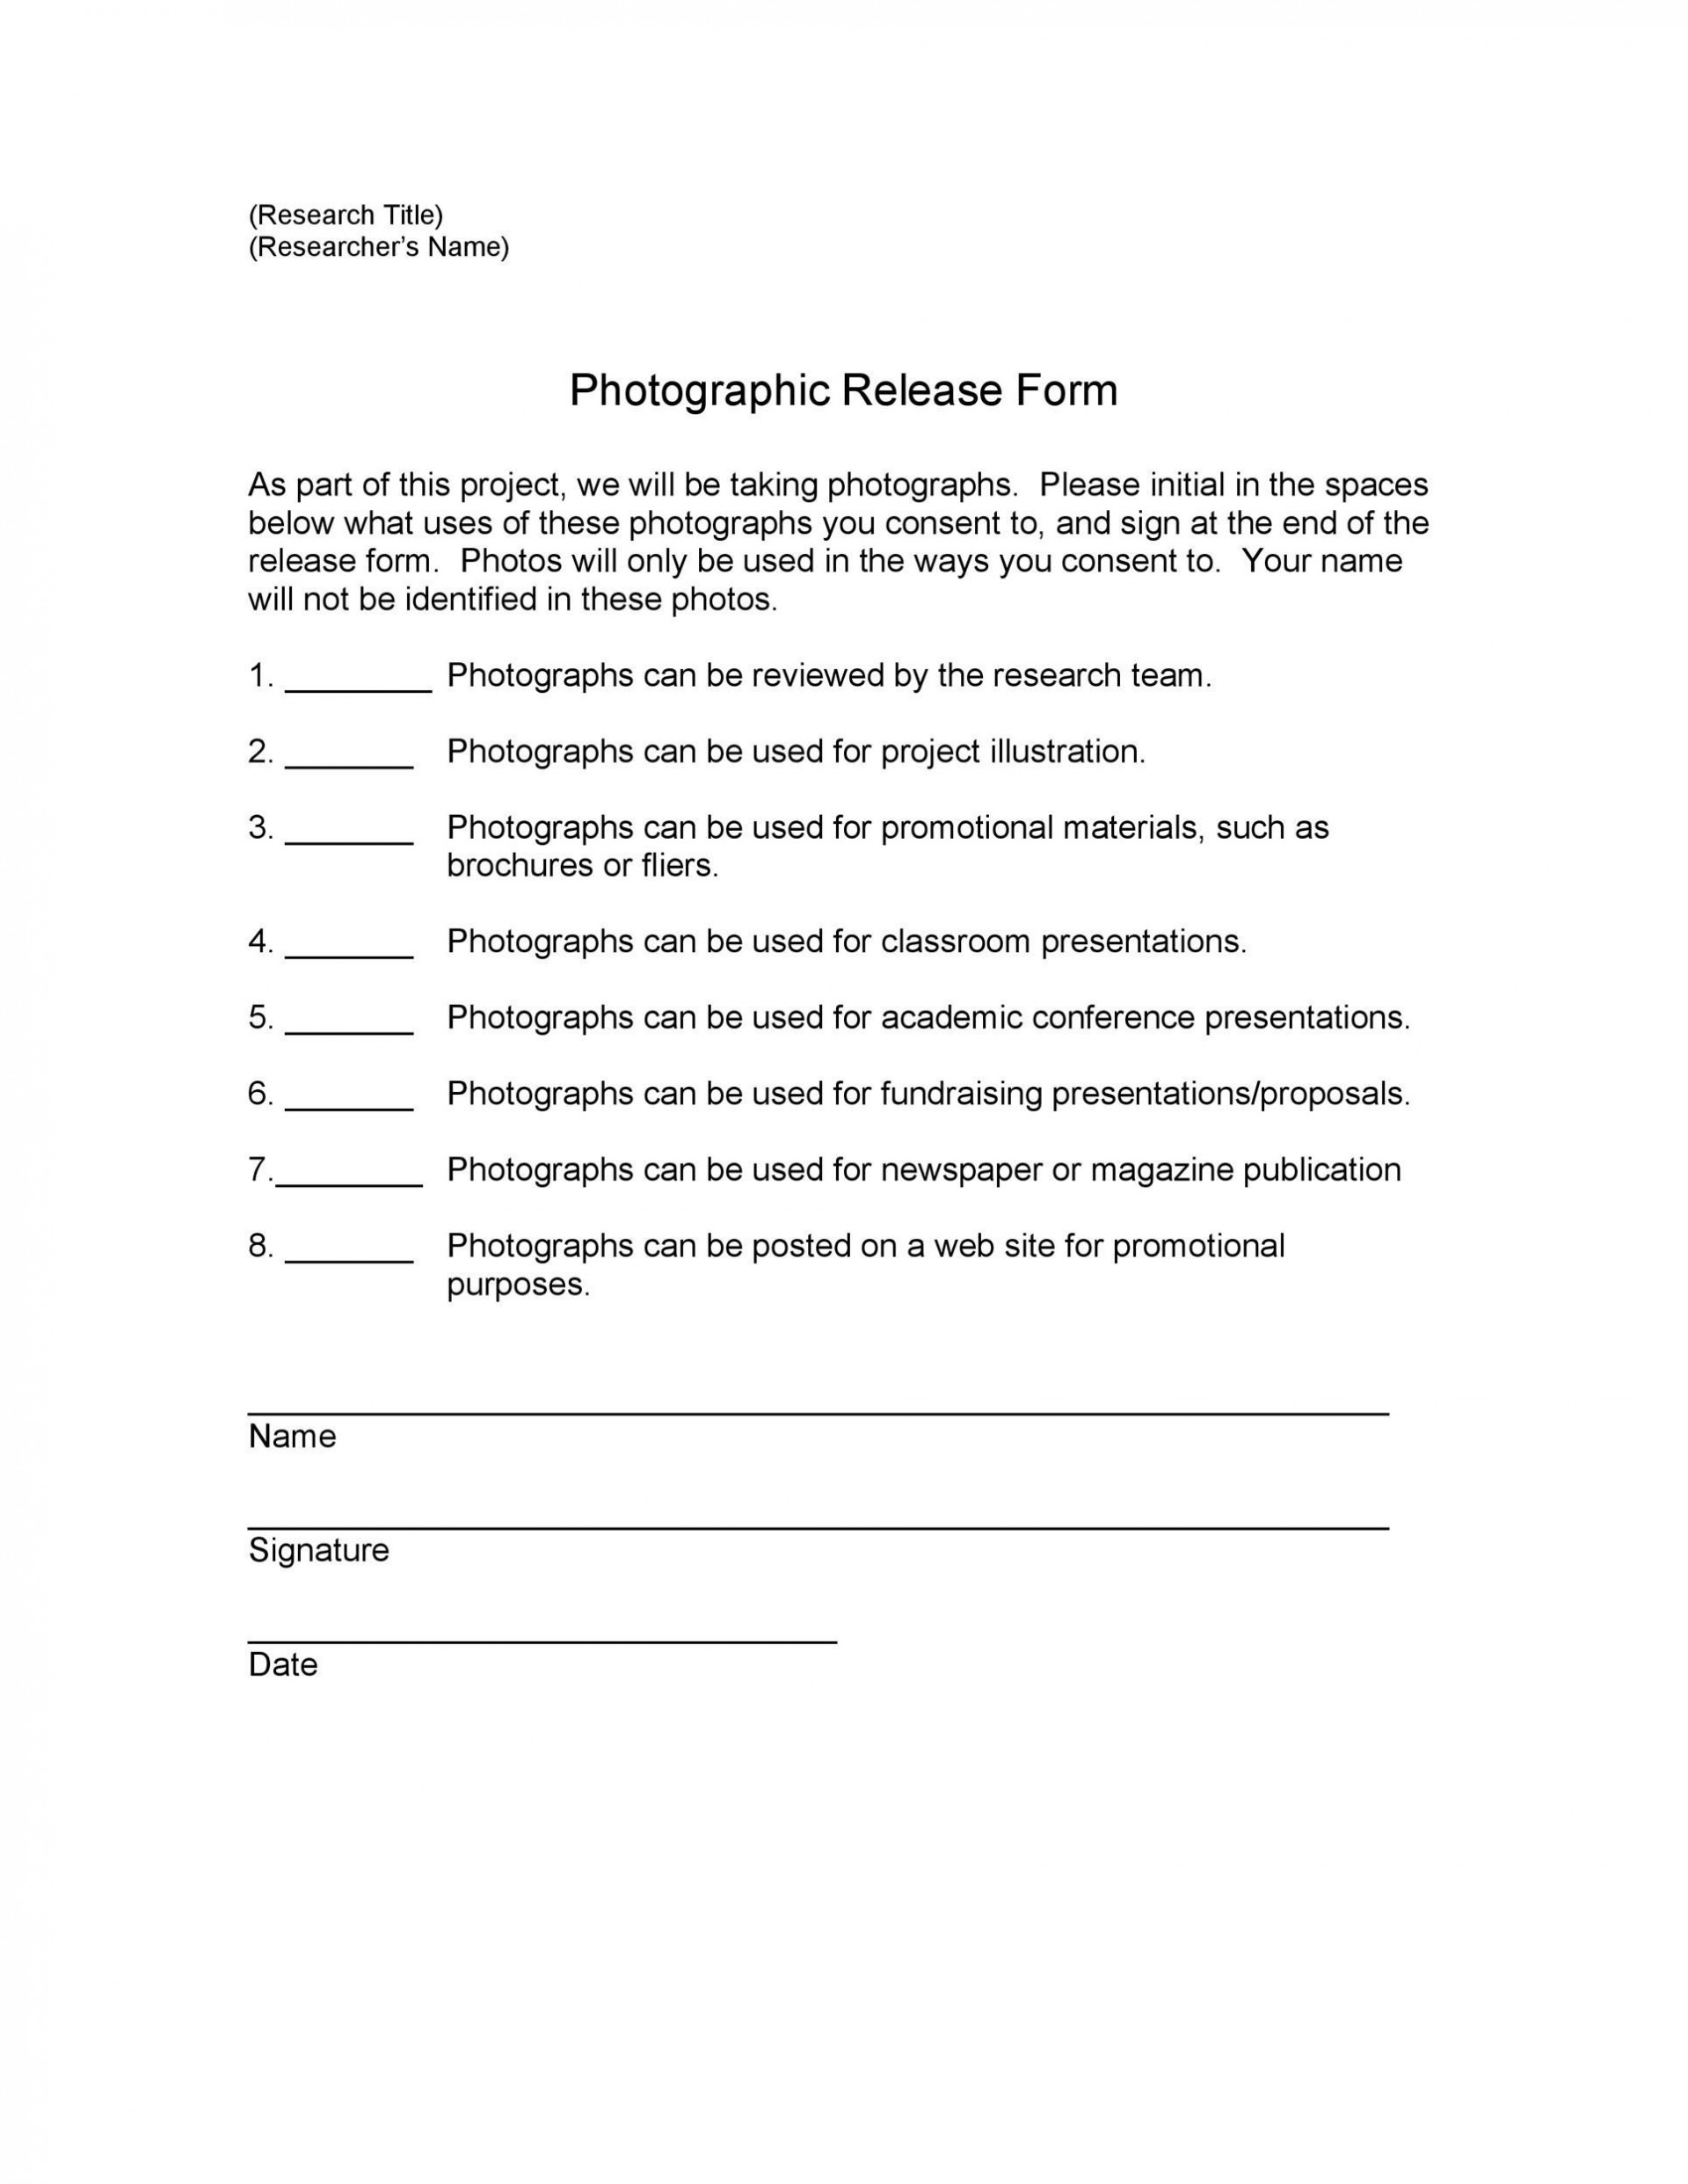 007 Simple Photography Release Form Template Highest Clarity  Image Australia Canada1920